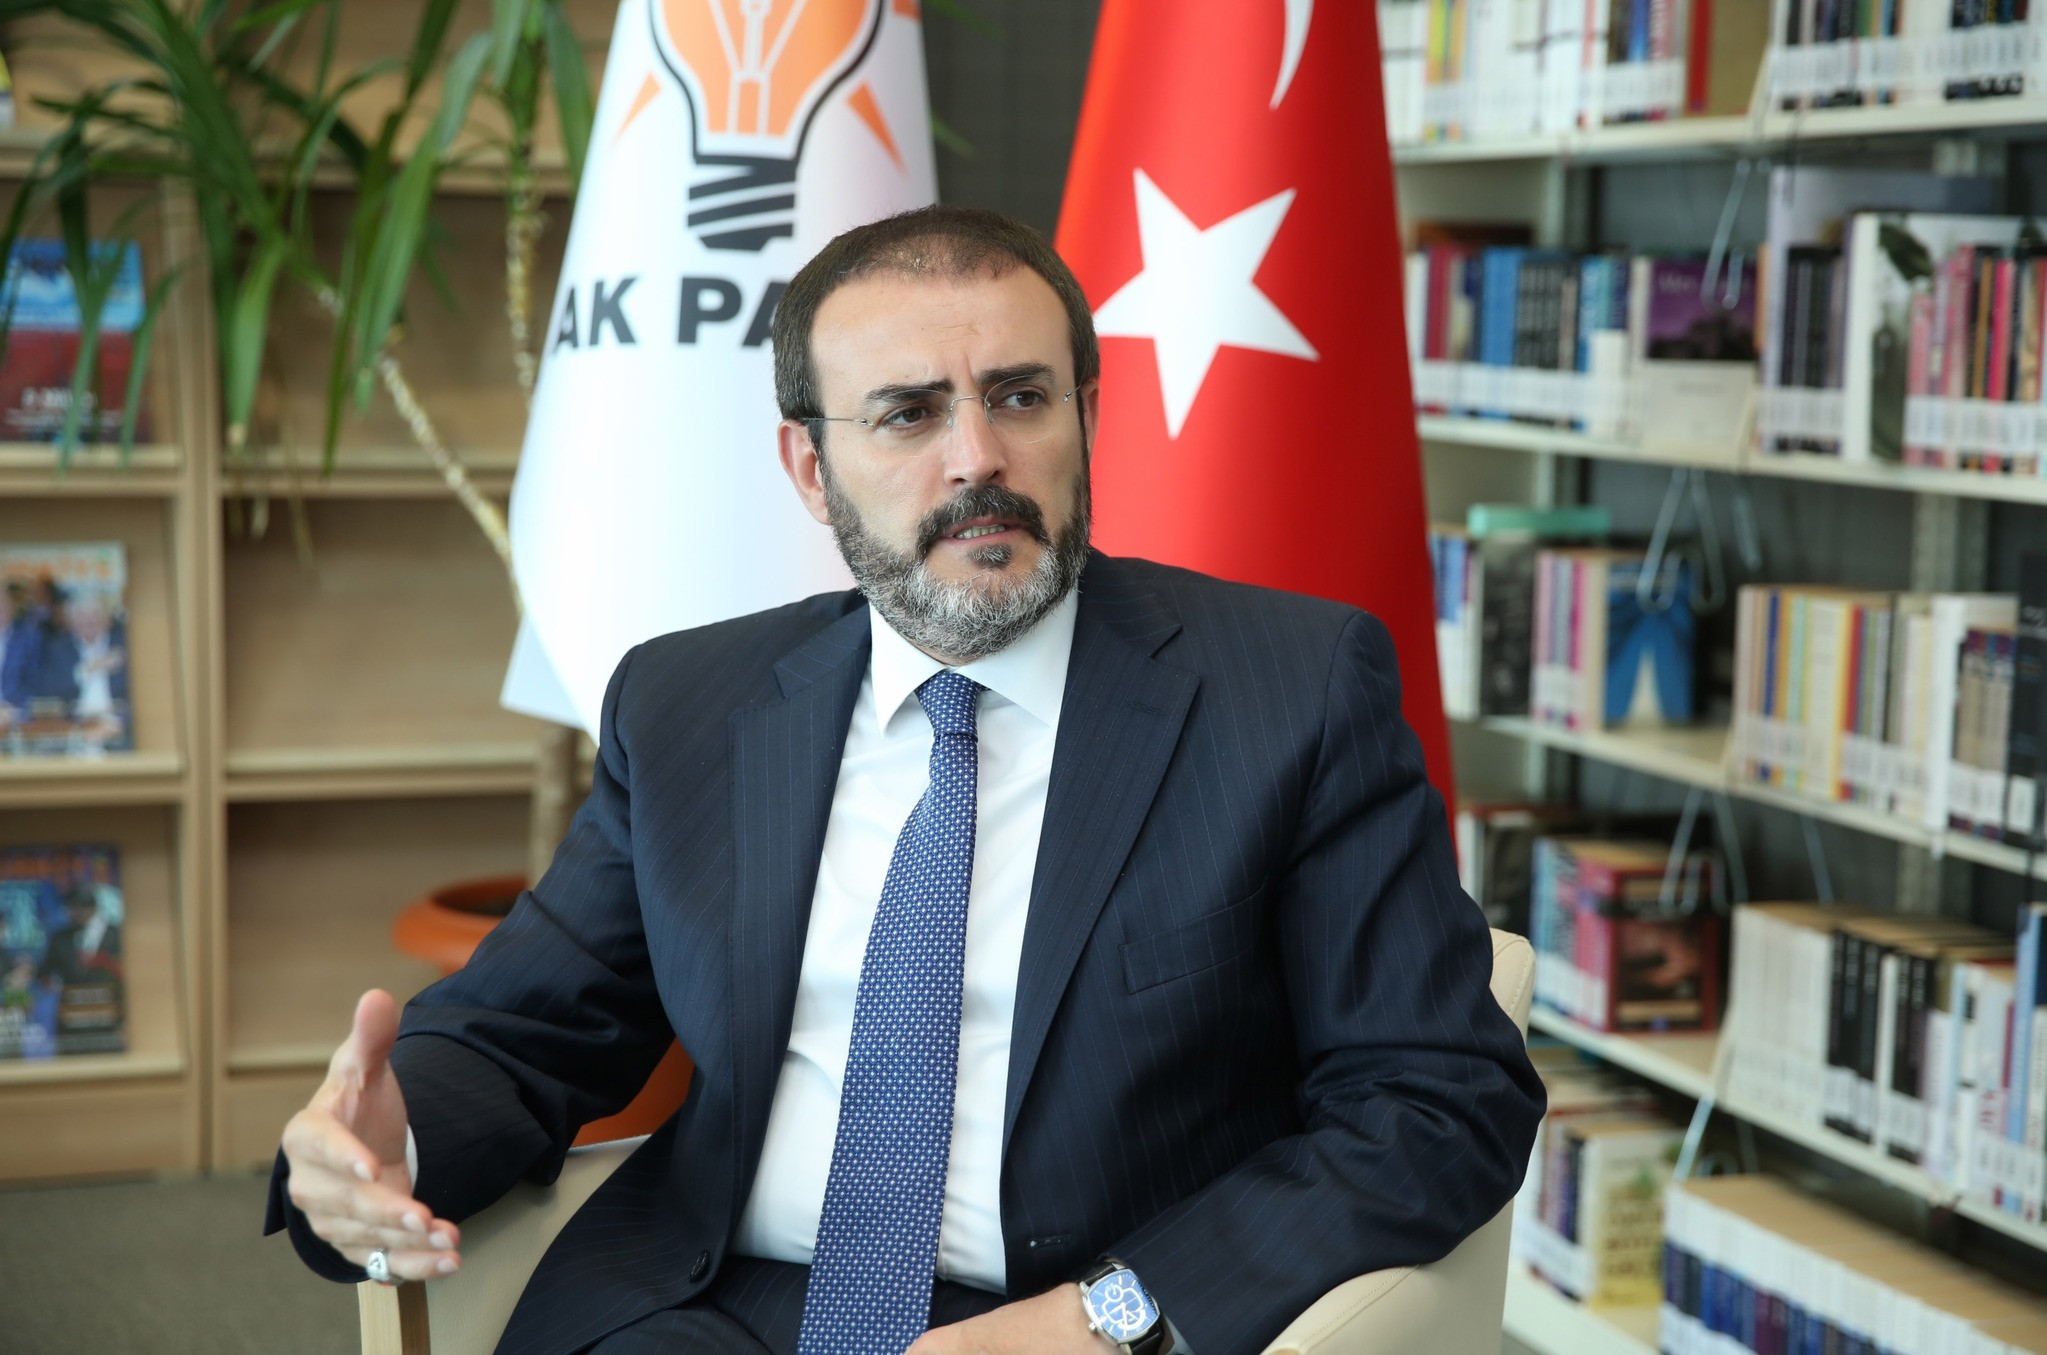 AK Party Spokesman u00dcnal said there has always been an effort to create tension concerning lifestyle since the AK Party came to power, and underlined that everyone's lifestyle and beliefs are under the assurance of the state.